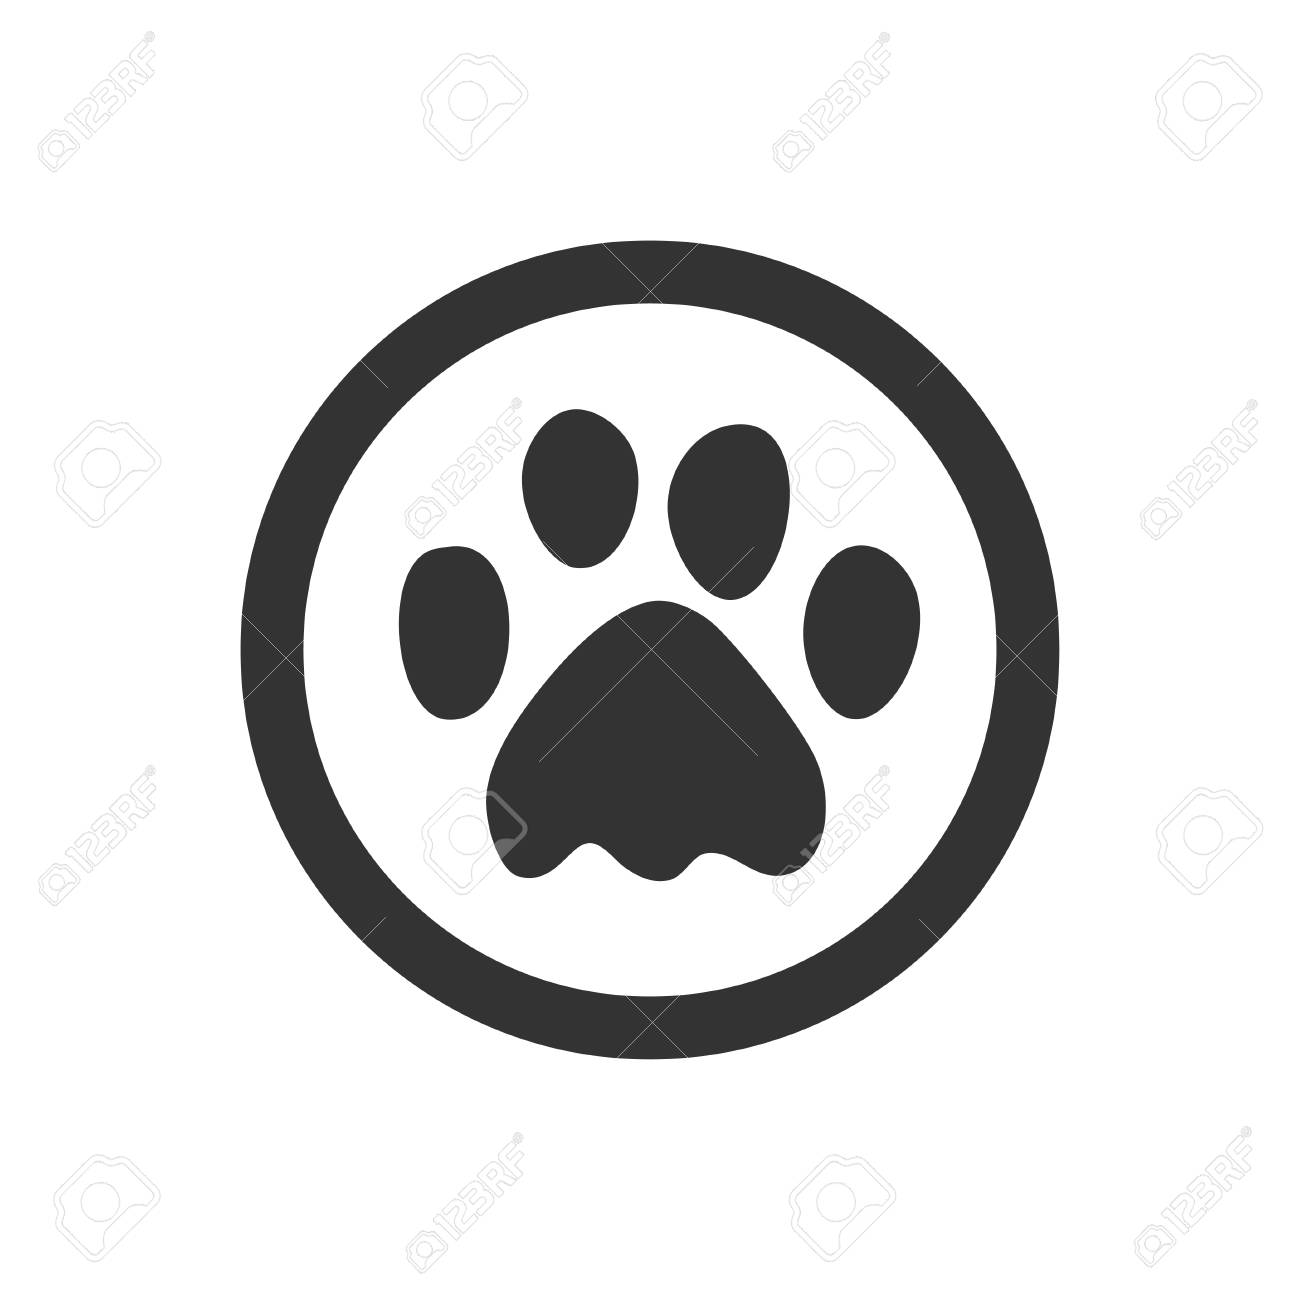 Paw Prints Dog Or Cat Paw Print Flat Icon For Animal Apps And